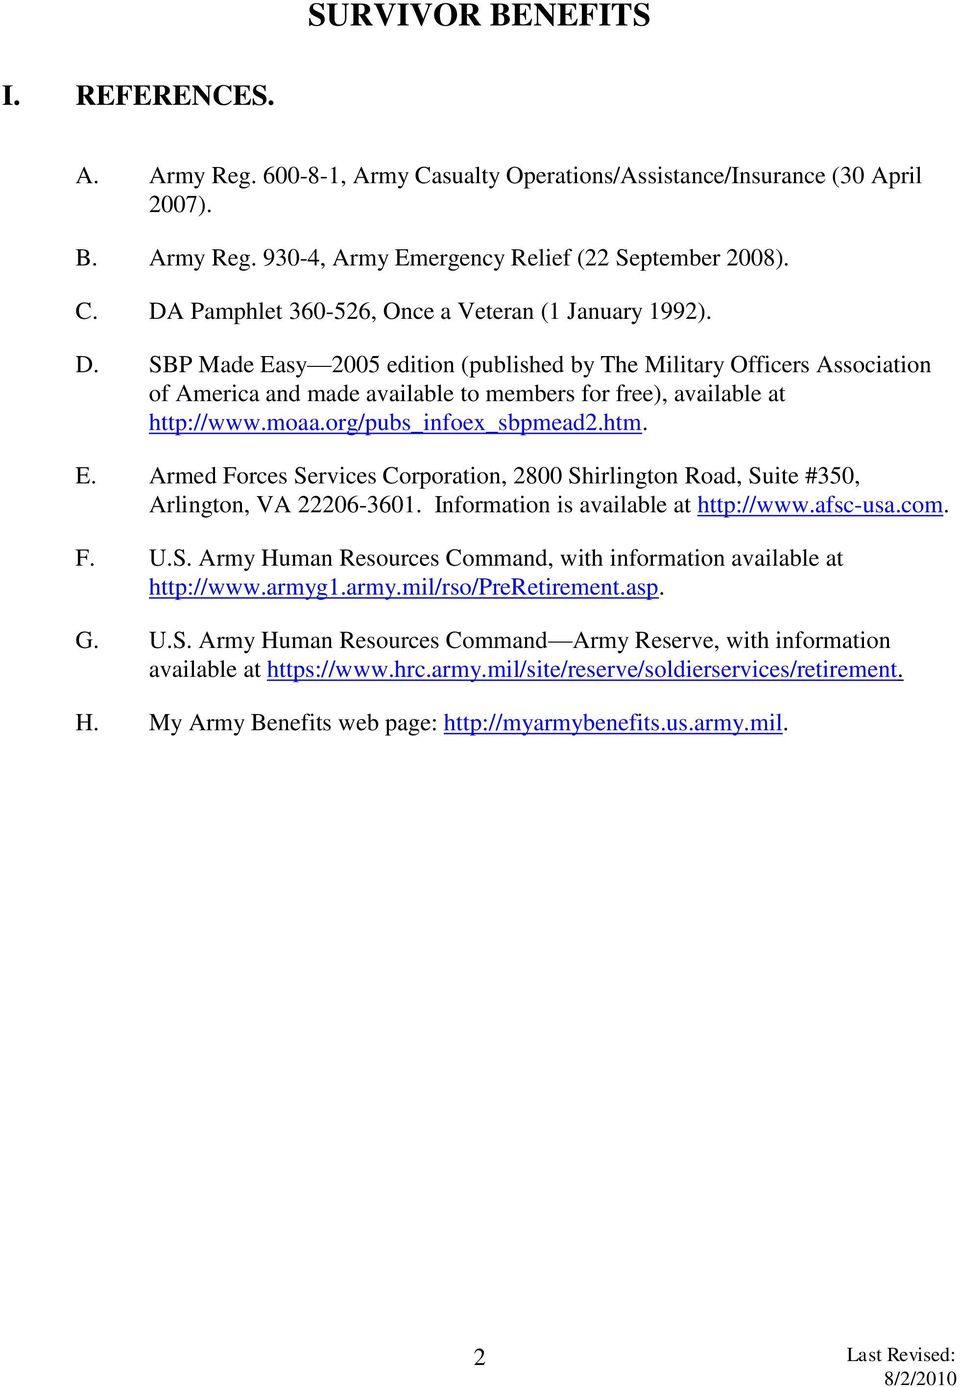 Information is available at http://www.afsc-usa.com. F. U.S. Army Human Resources Command, with information available at http://www.armyg1.army.mil/rso/preretirement.asp. G. U.S. Army Human Resources Command Army Reserve, with information available at https://www.